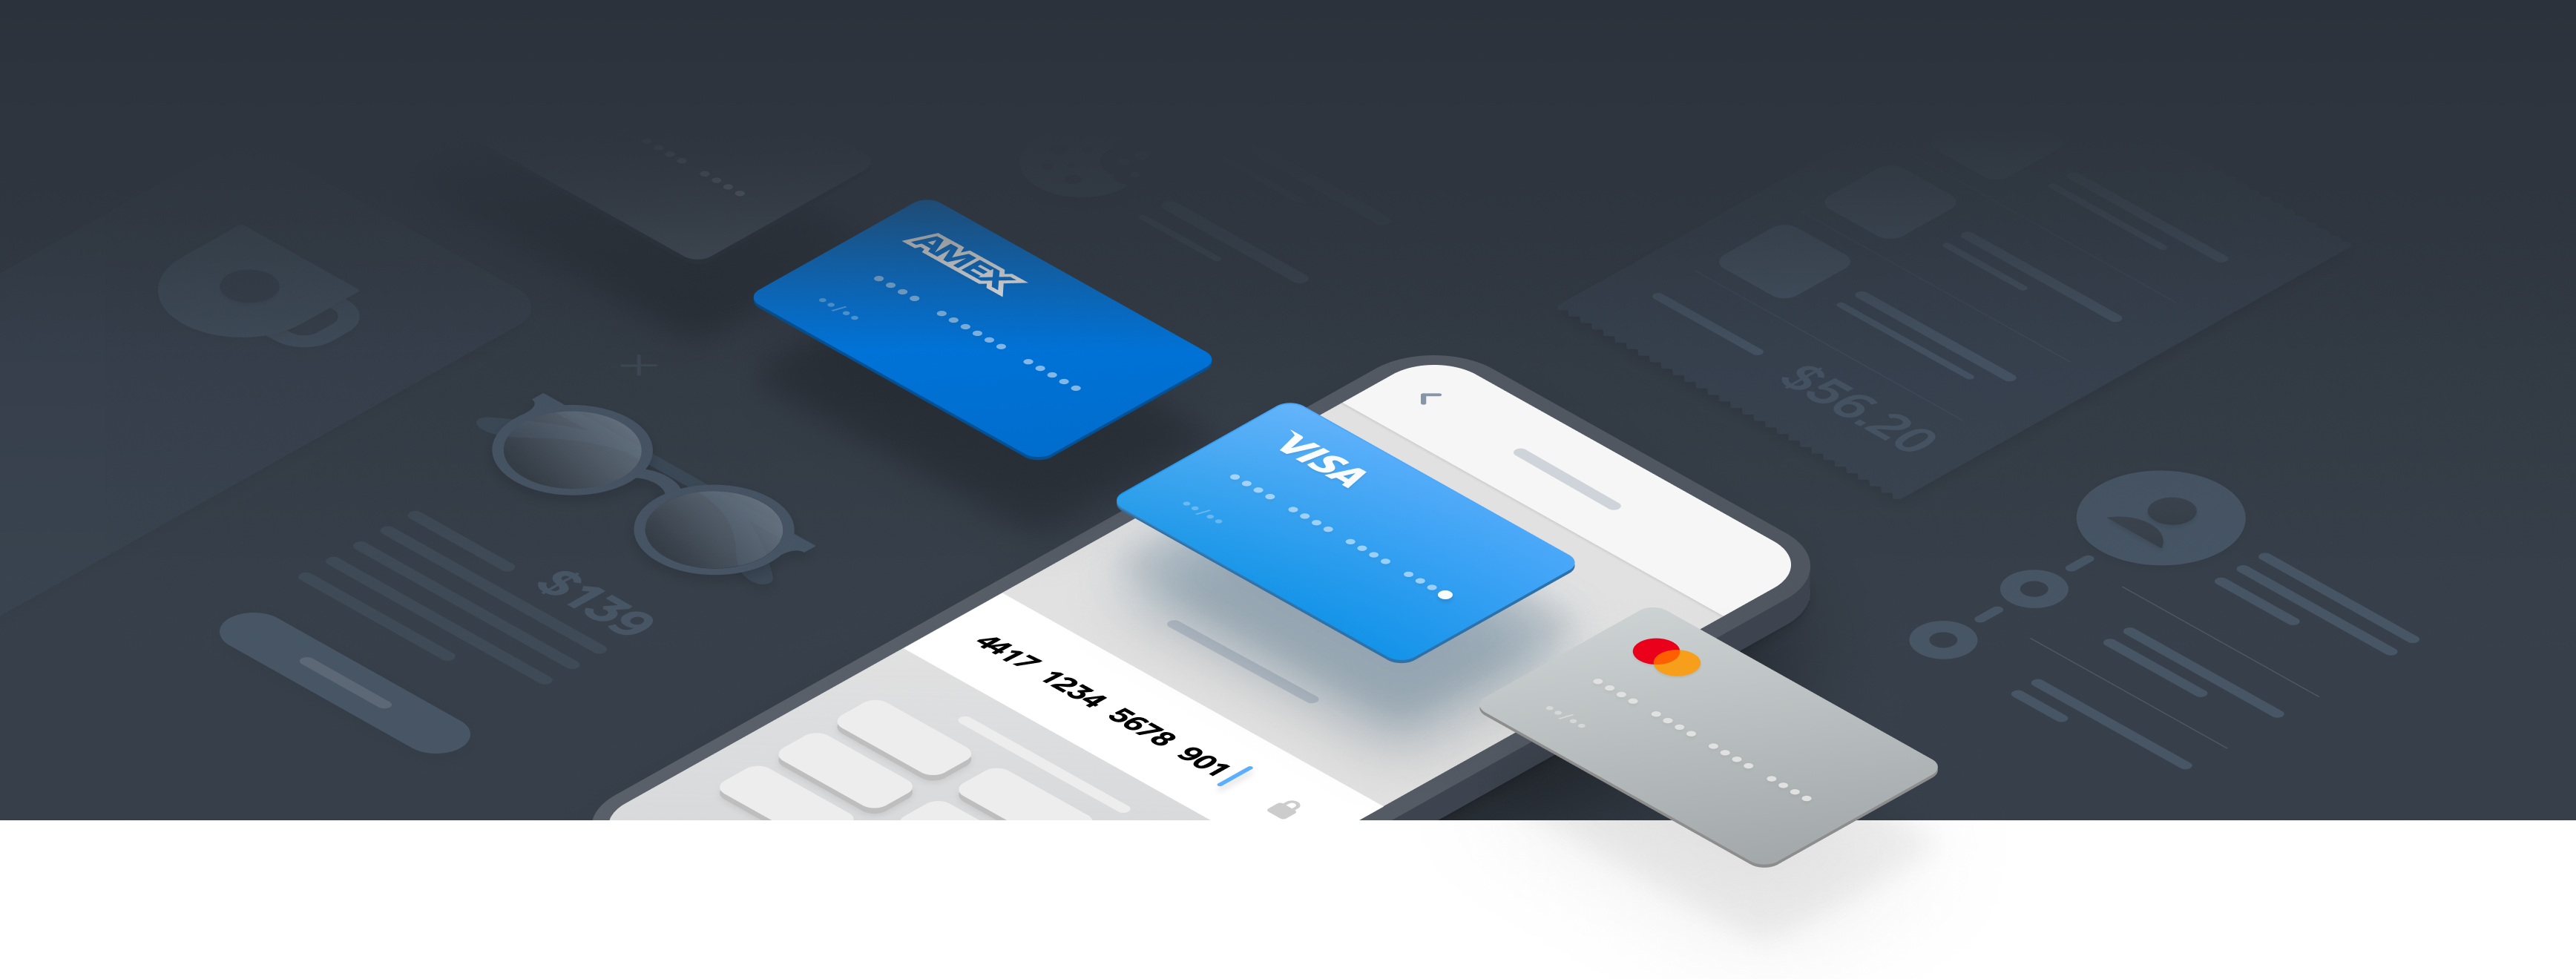 Square Launches Payments SDK, Enabling Developers To Process